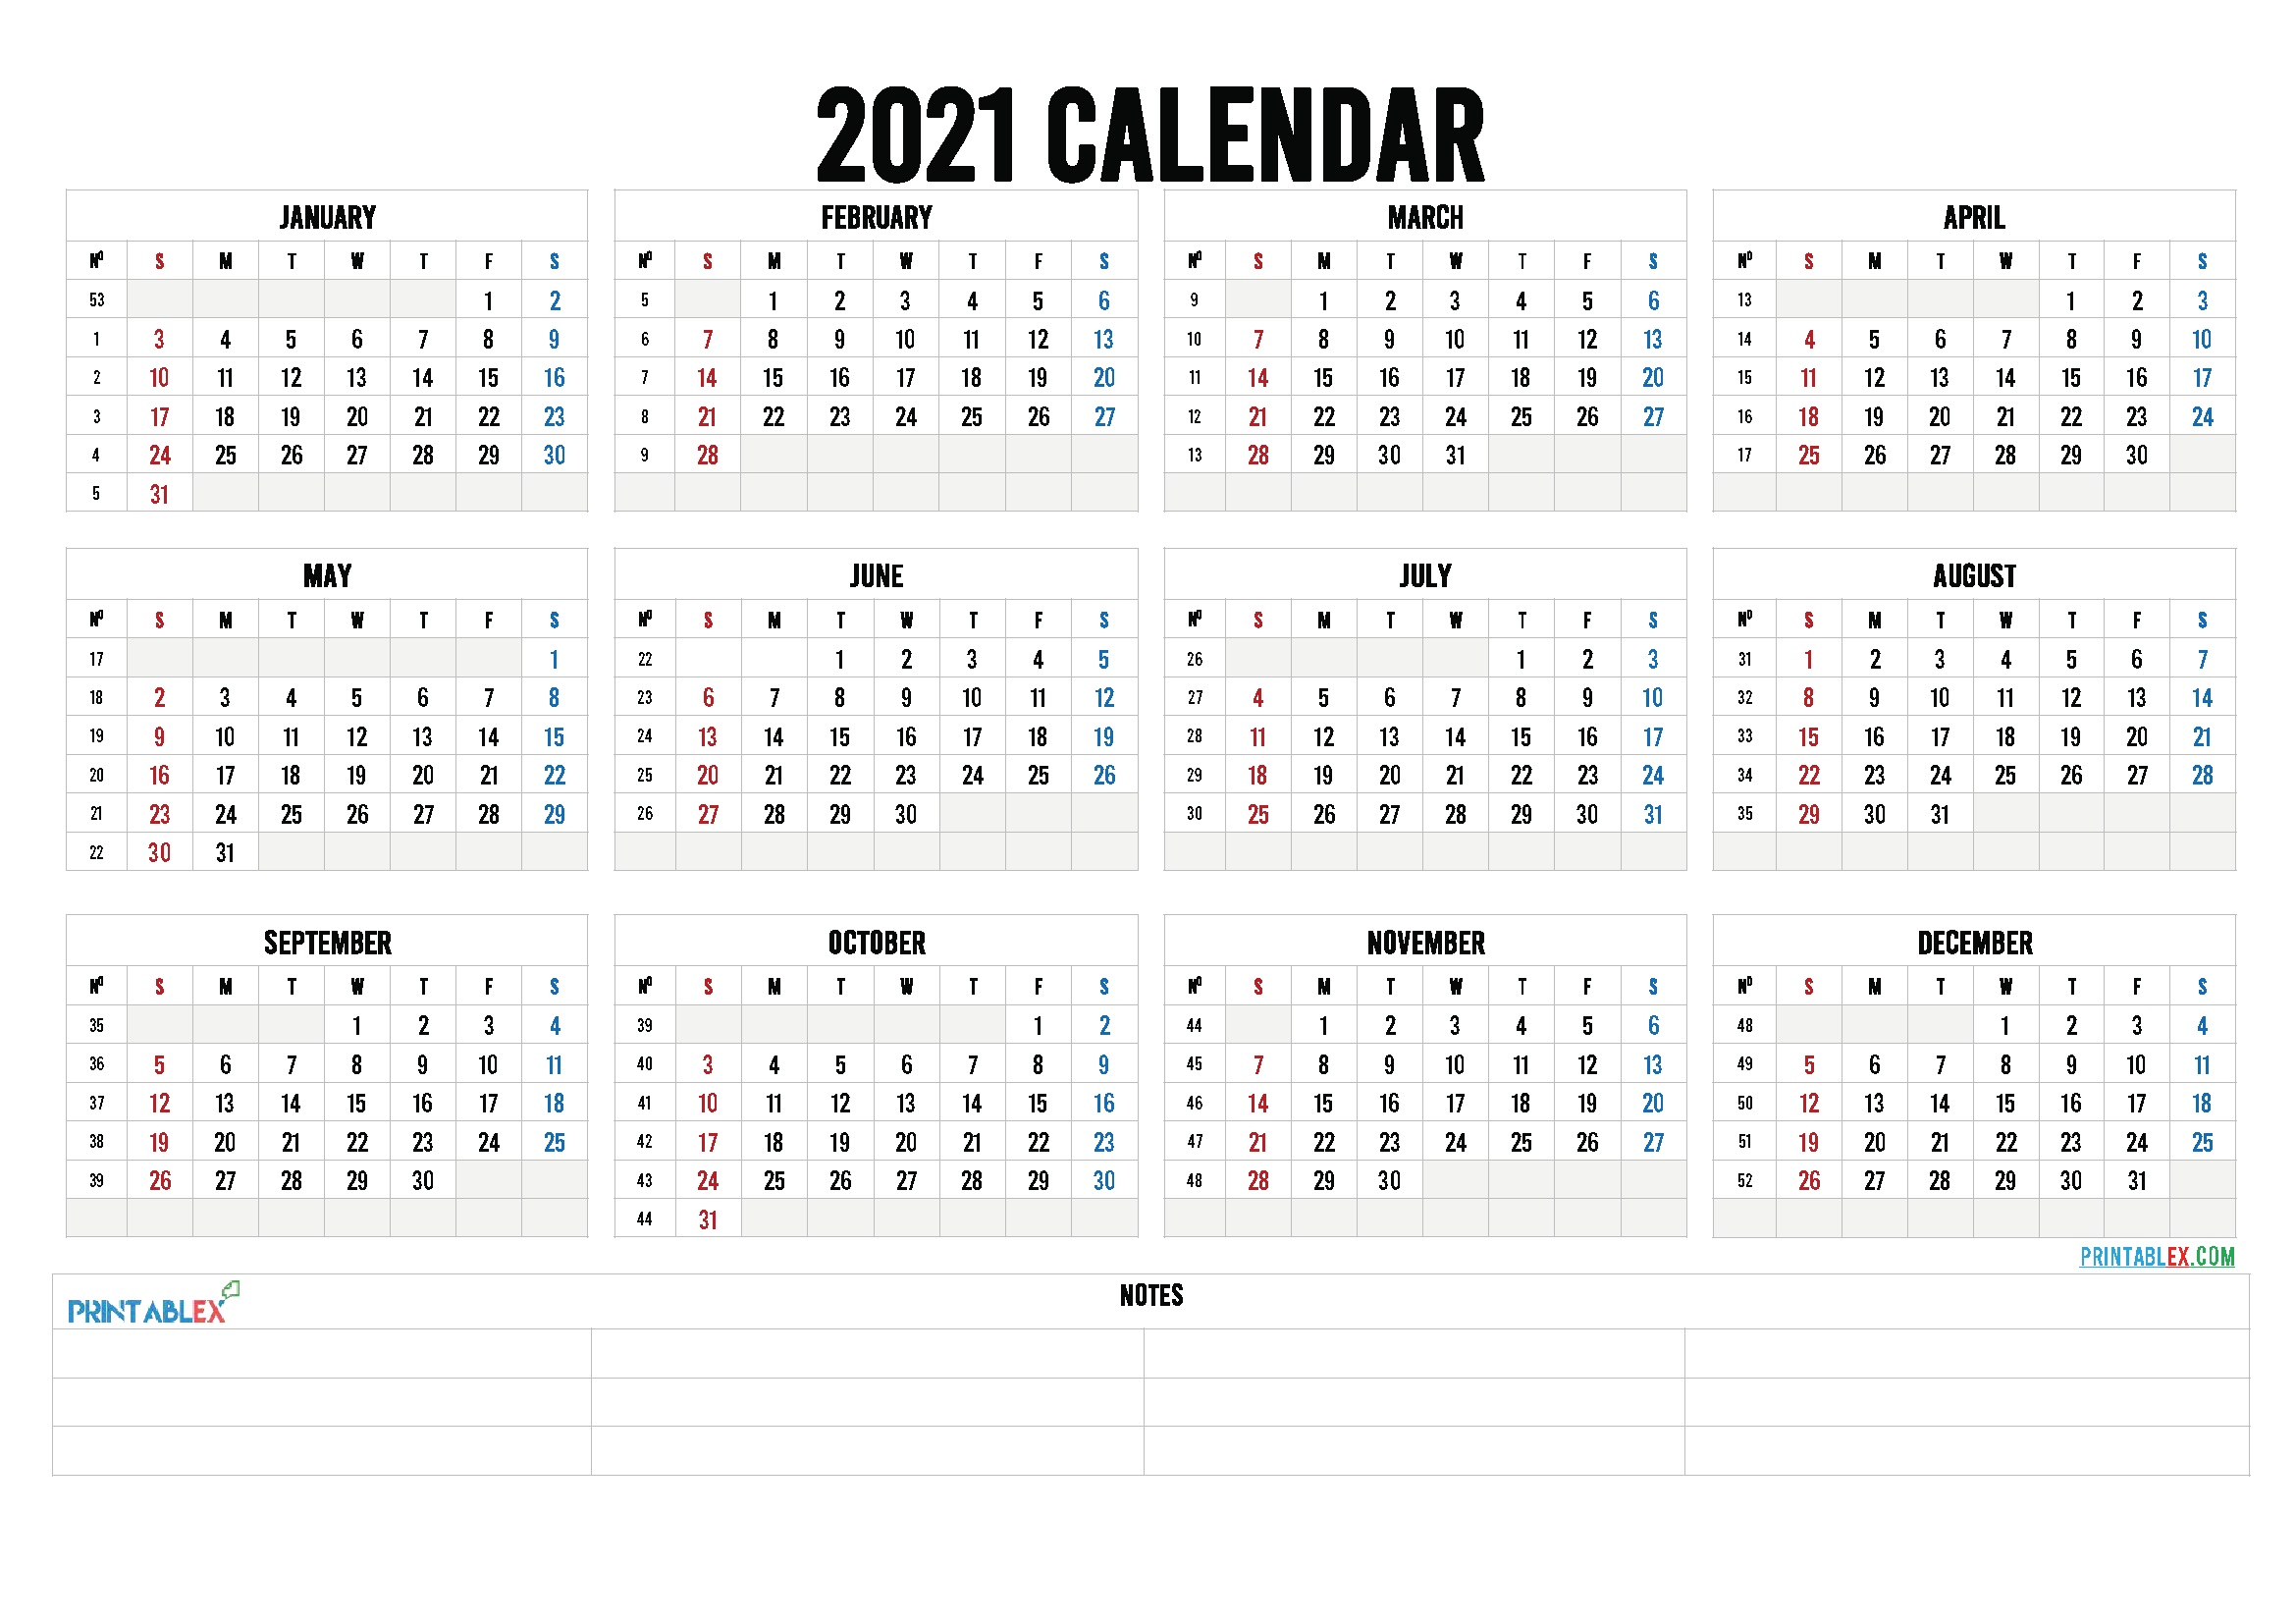 Free Printable 2021 Calendar by Year (Font: kirsty)